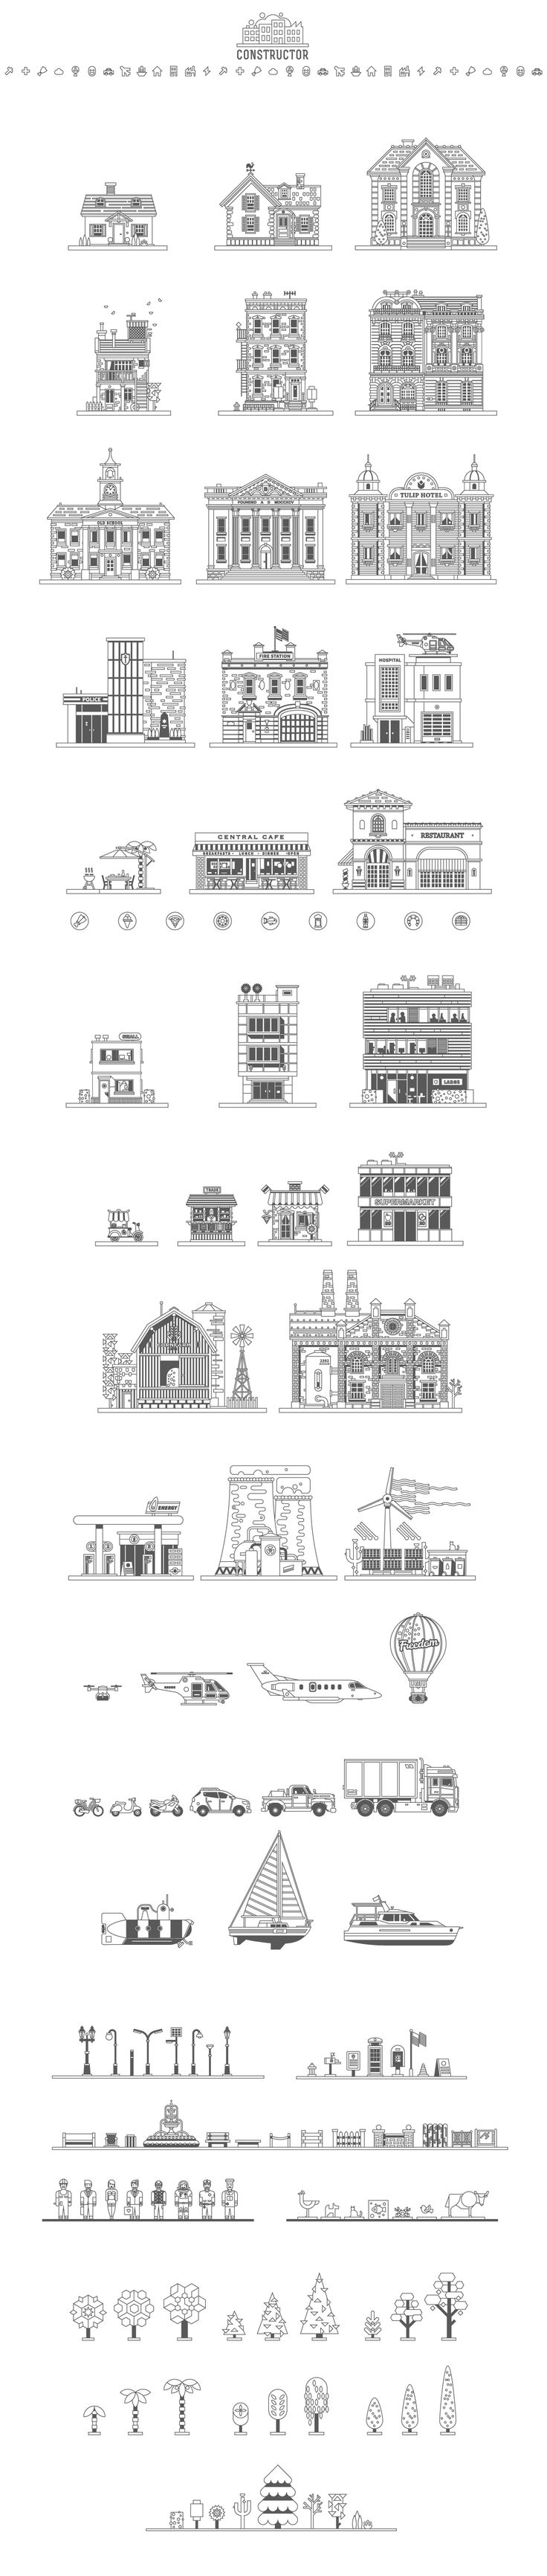 Construct Your City - Vector KIT by Oleg Beresnev